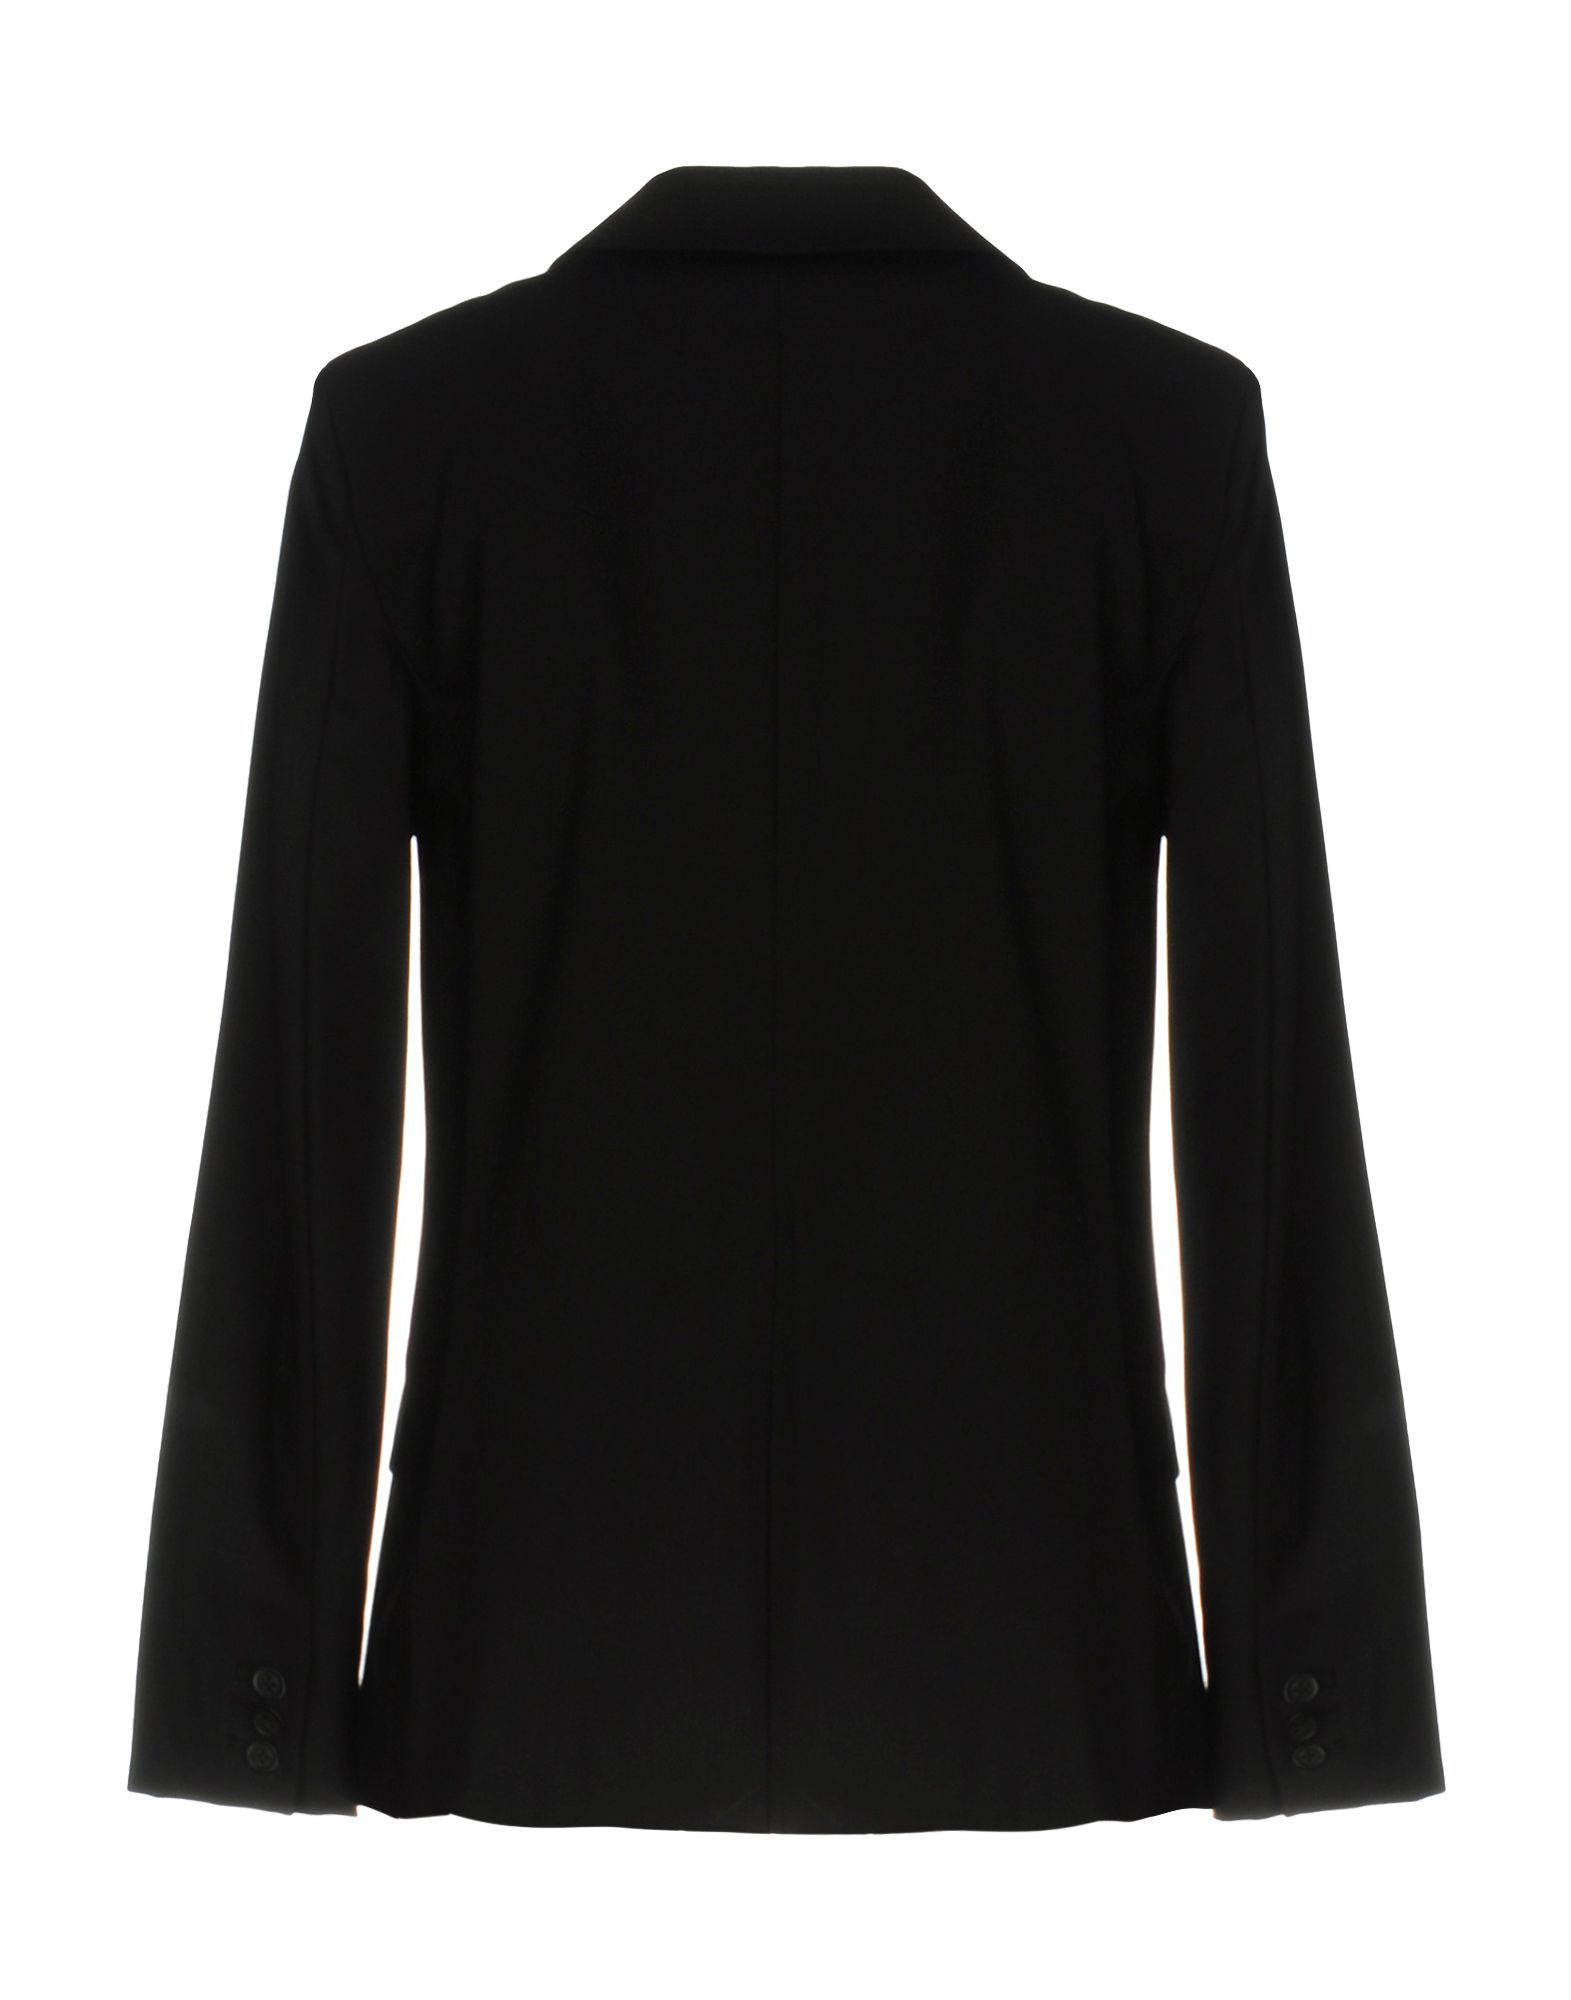 SUITS AND JACKETS Michael Michael Kors Black Woman Wool